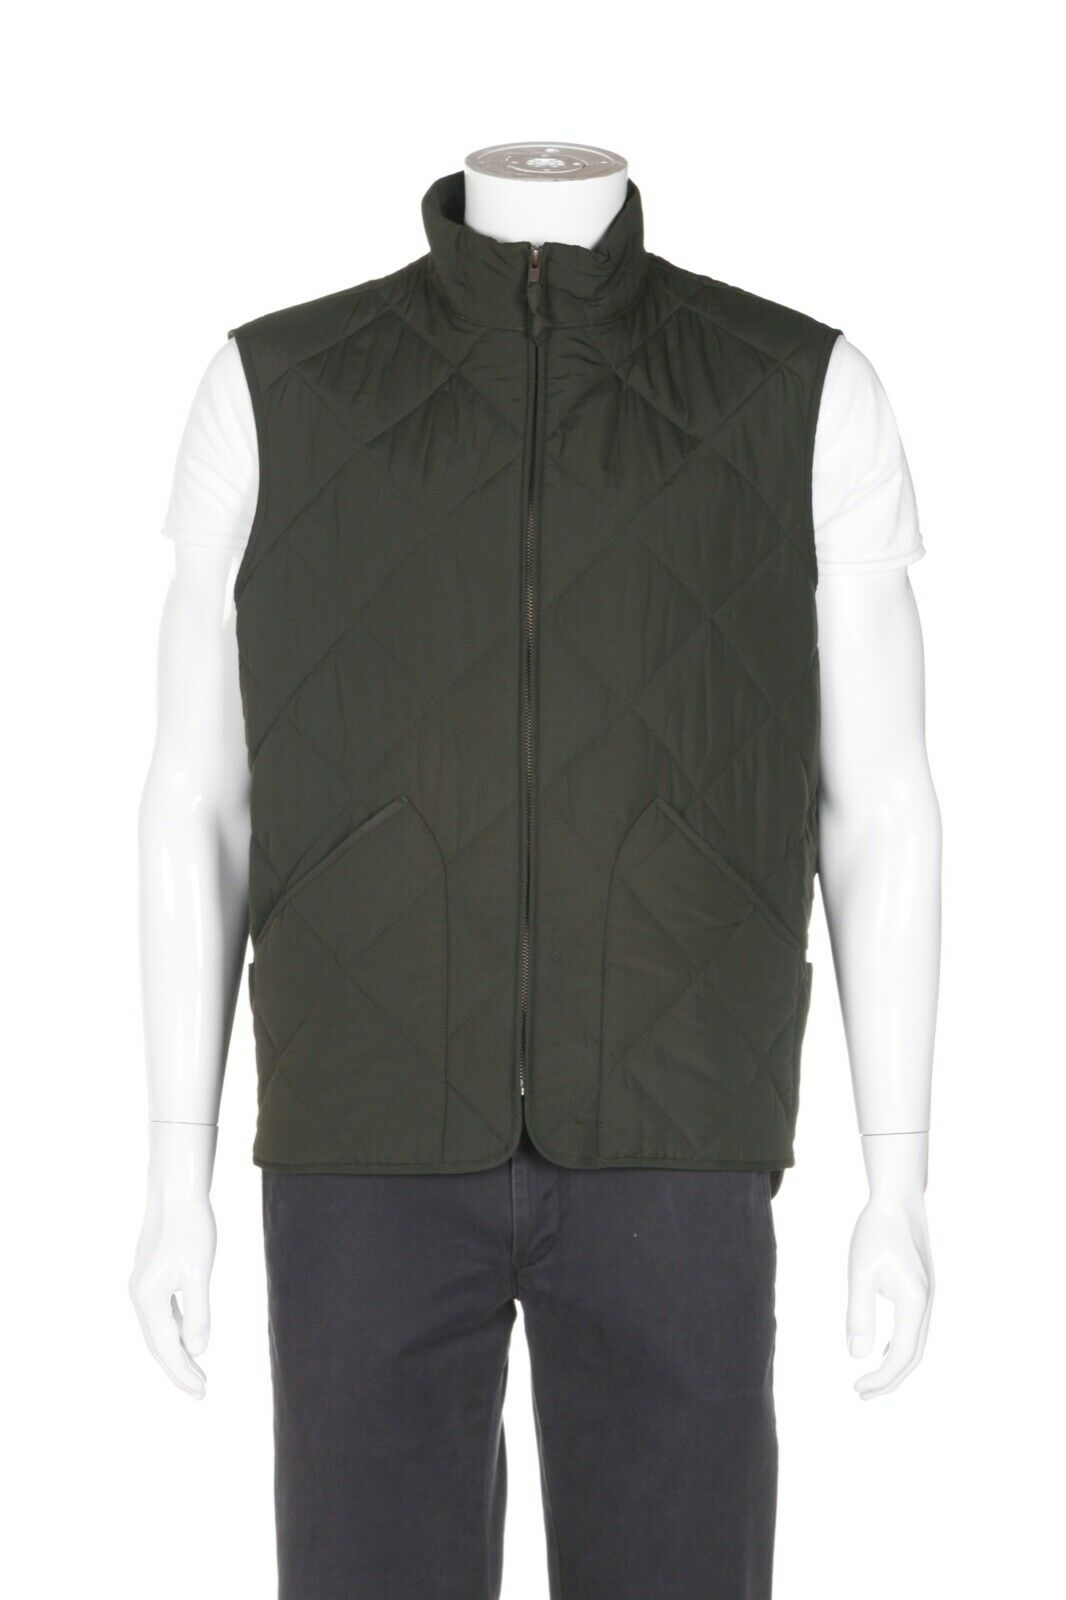 J. CREW MERCANTILE Sussex Quilted Vest